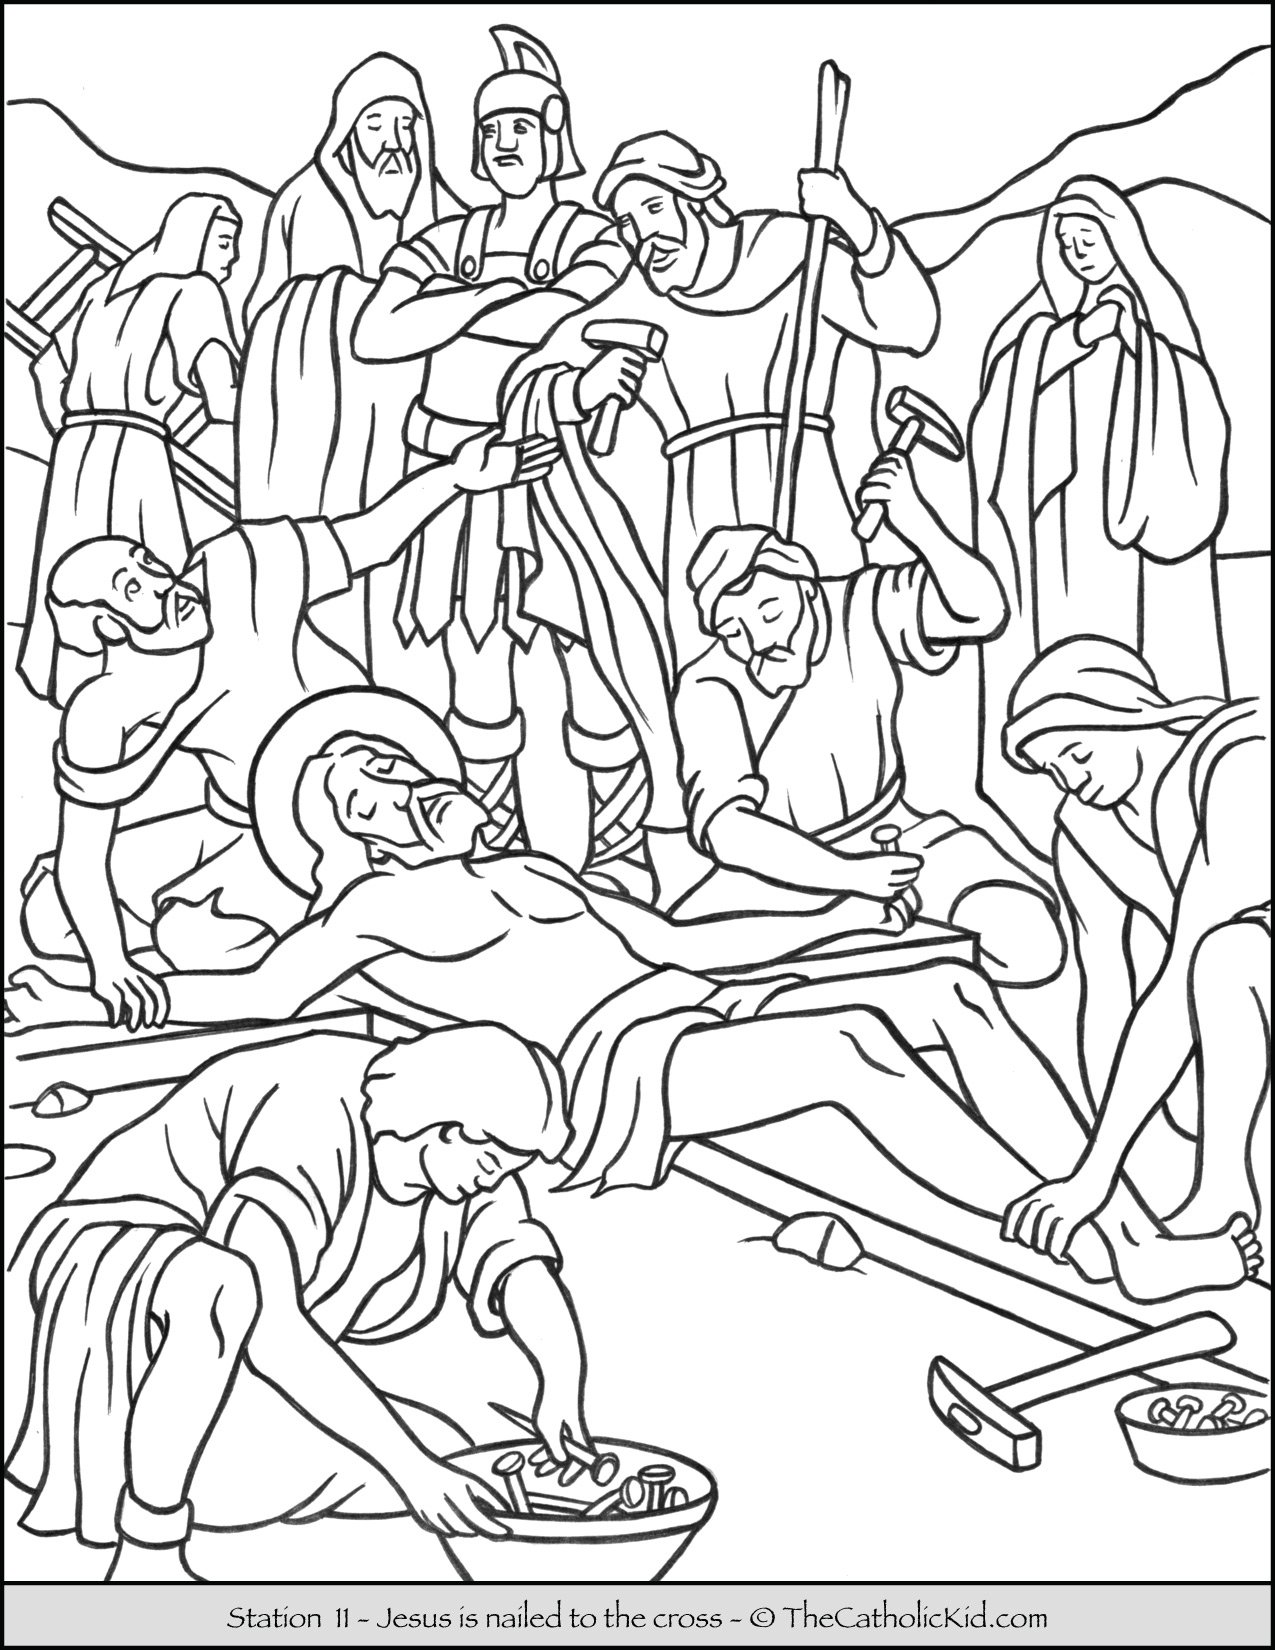 Stations of the Cross Catholic Coloring Pages for Kids 11